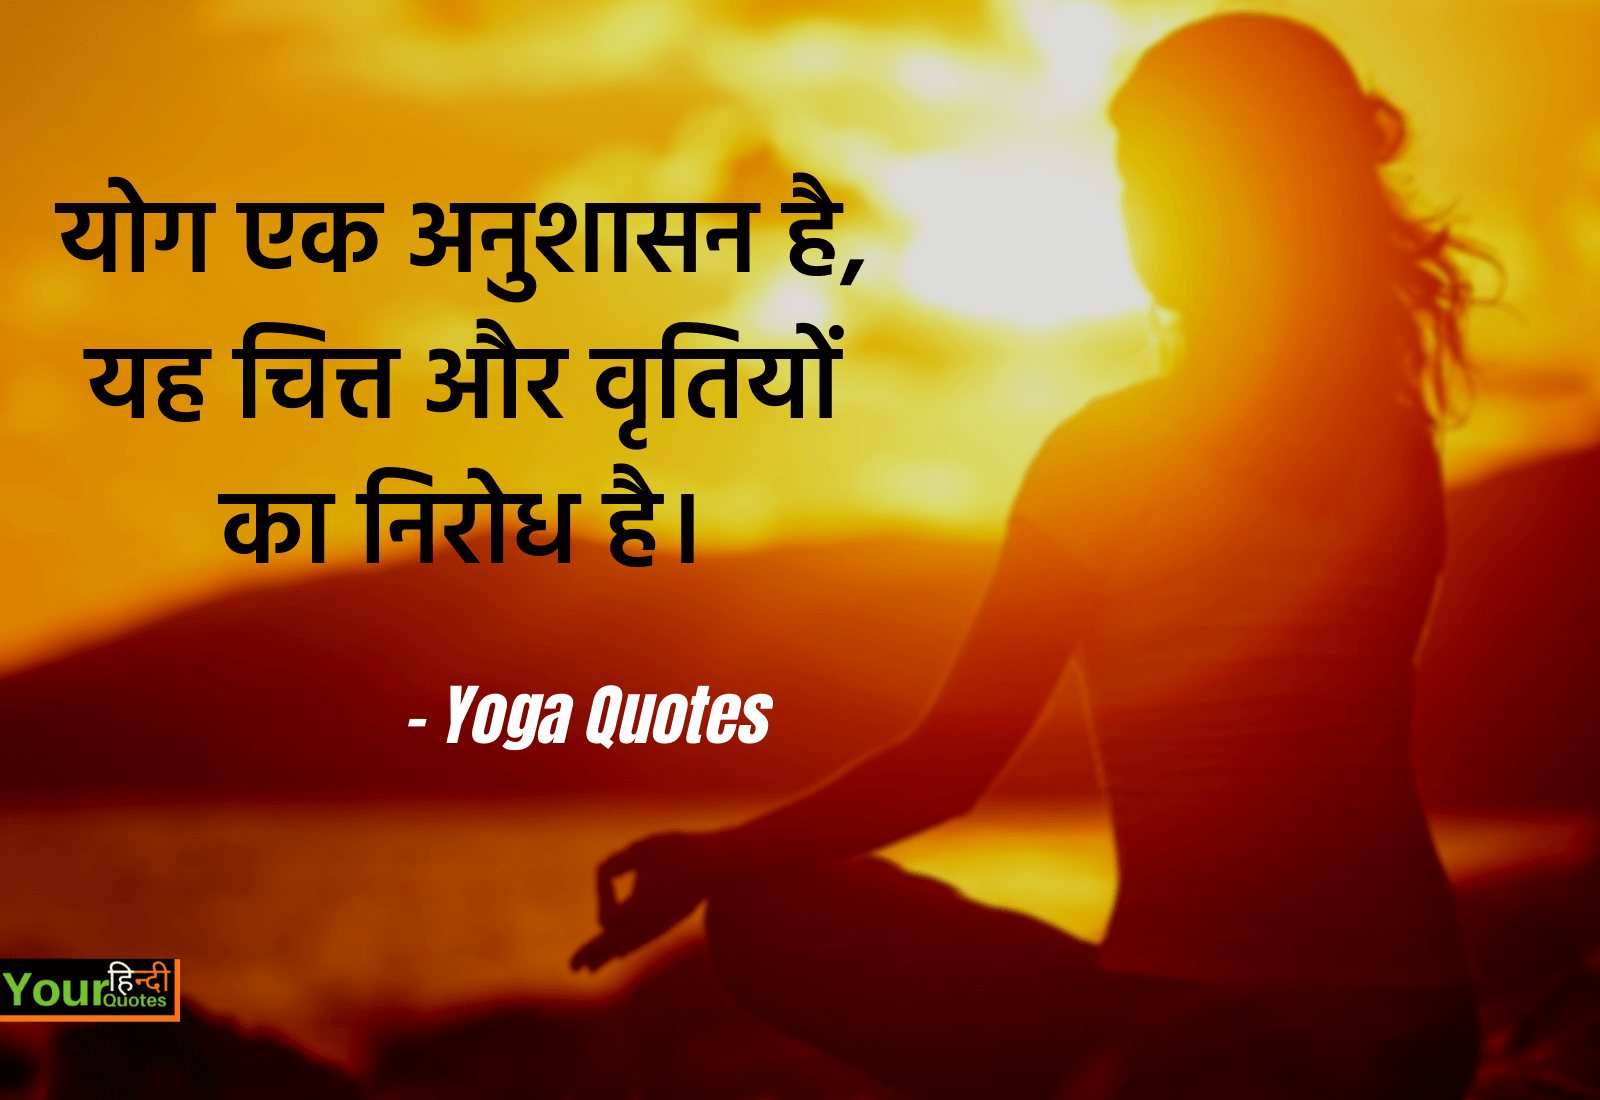 Yoga Quotes Image